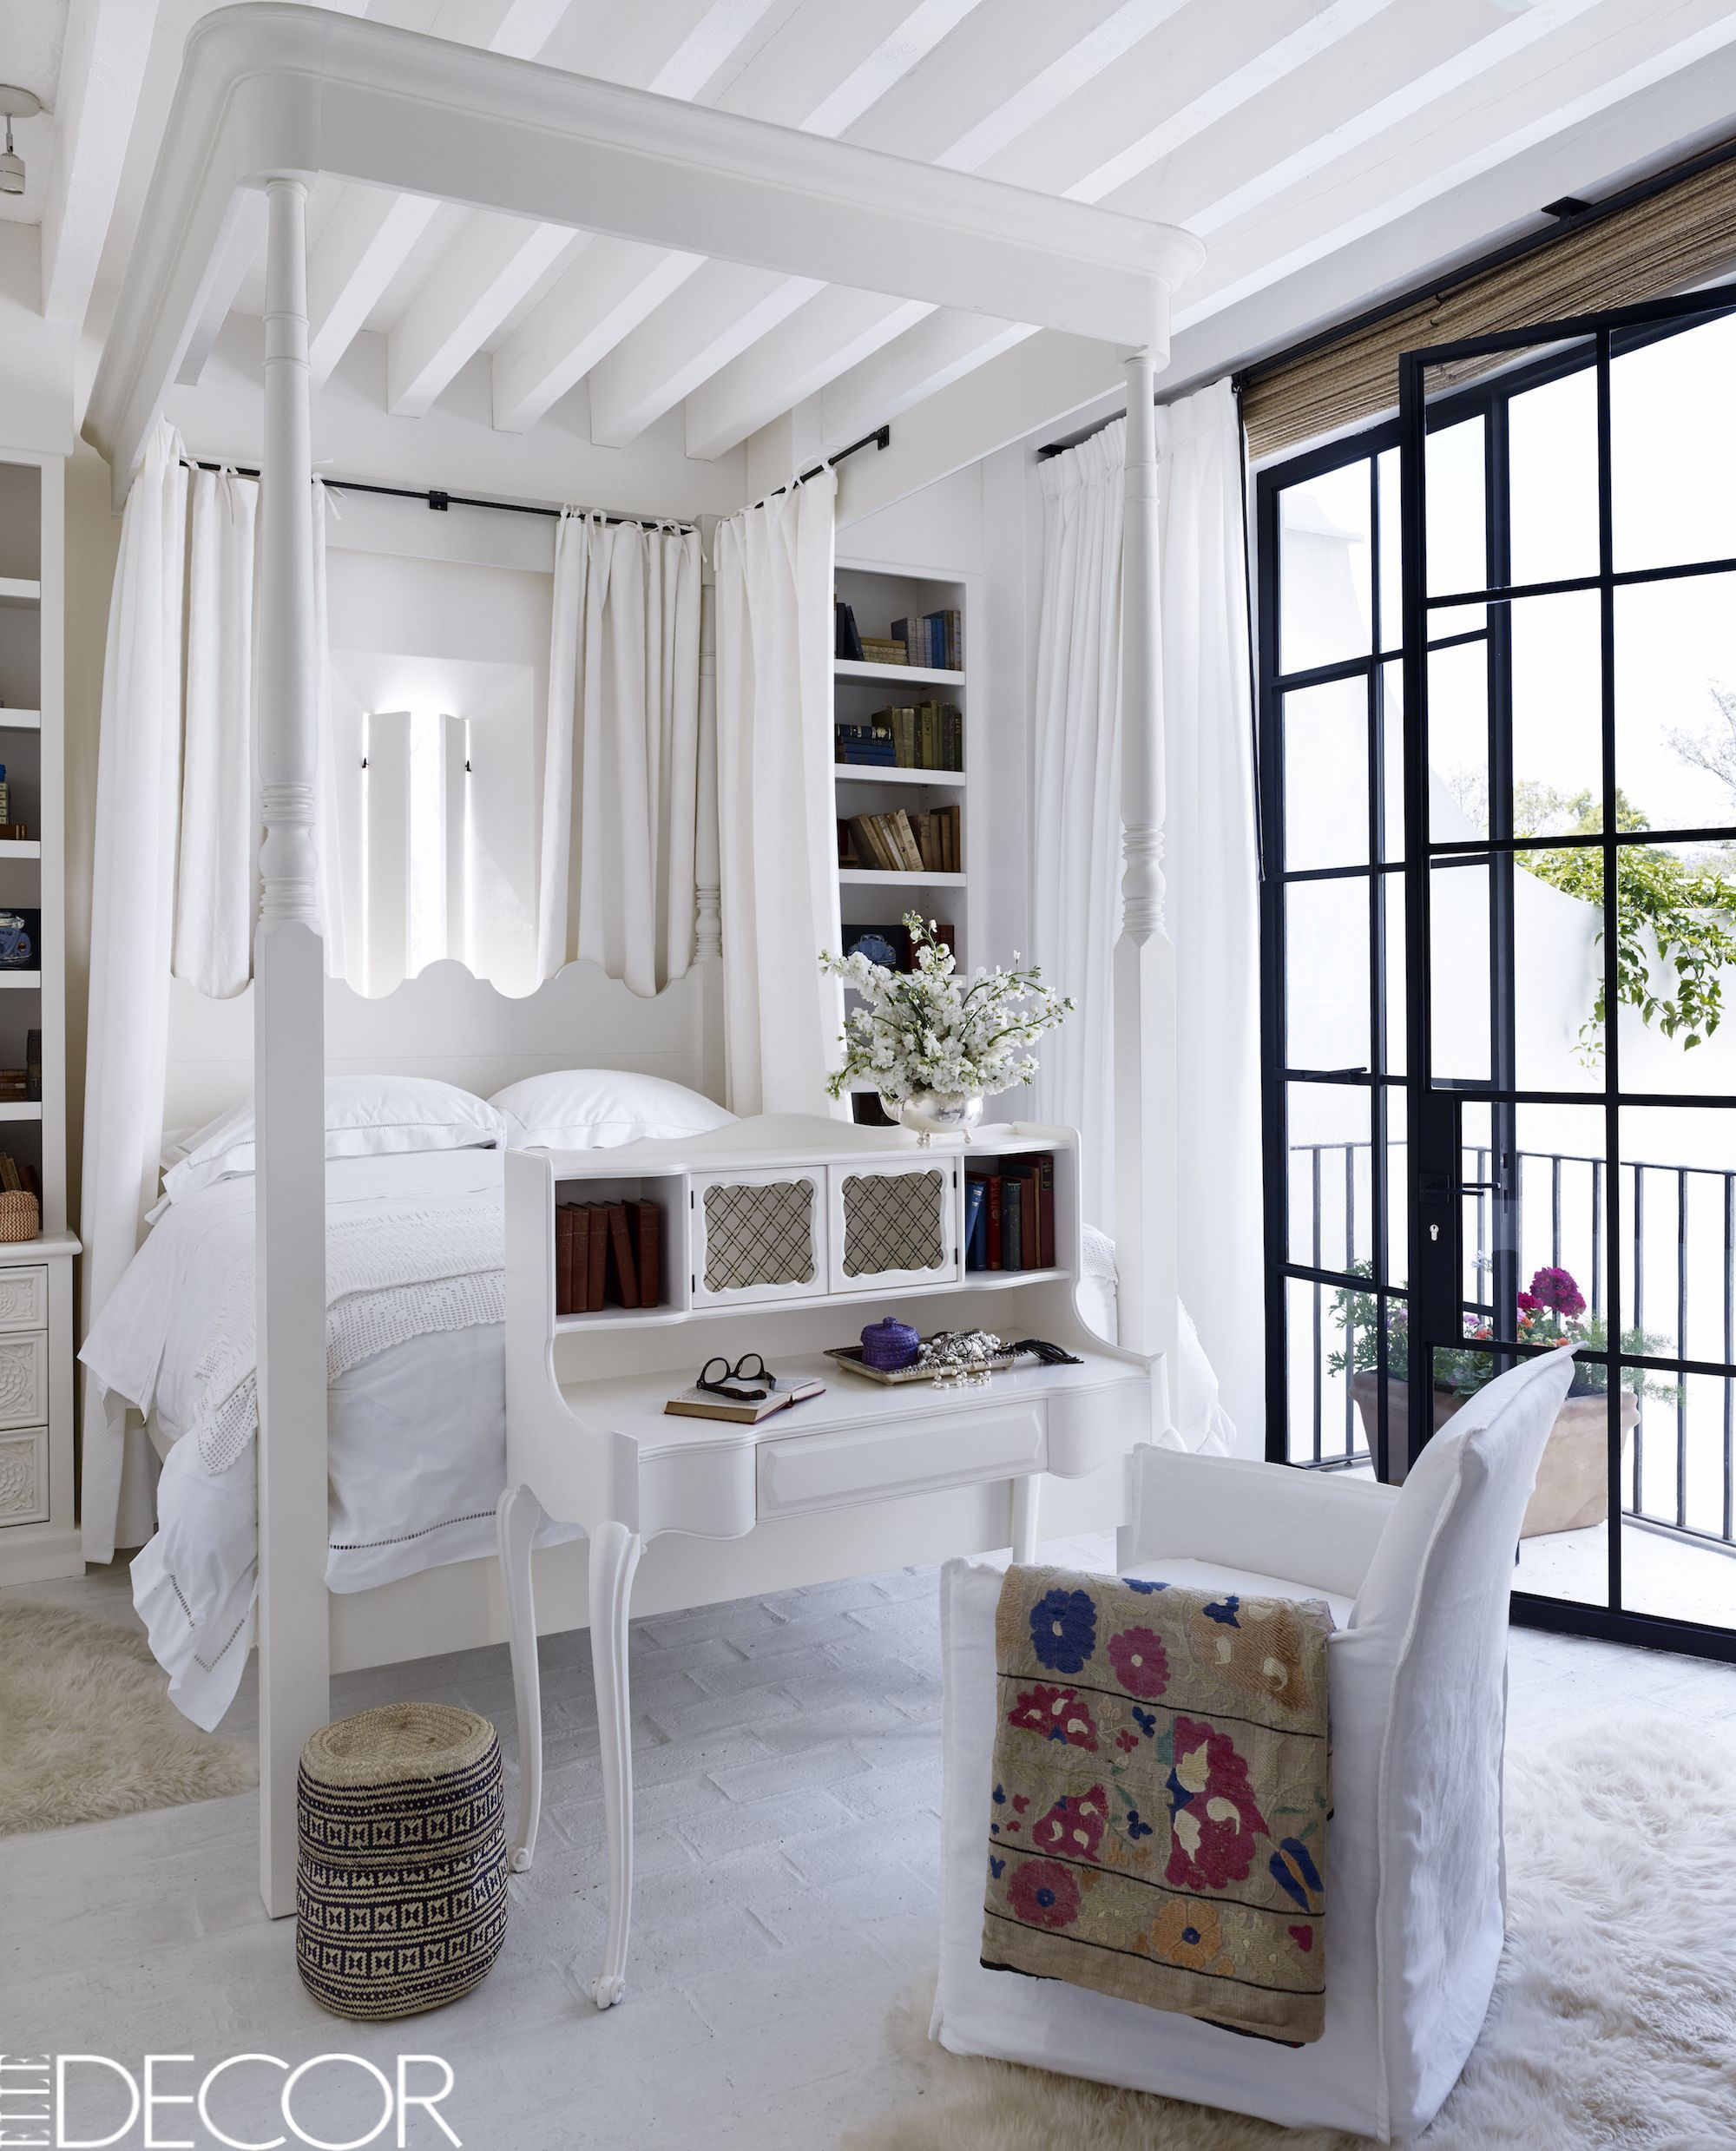 43 Small Bedroom Design Ideas  Decorating Tips for Small